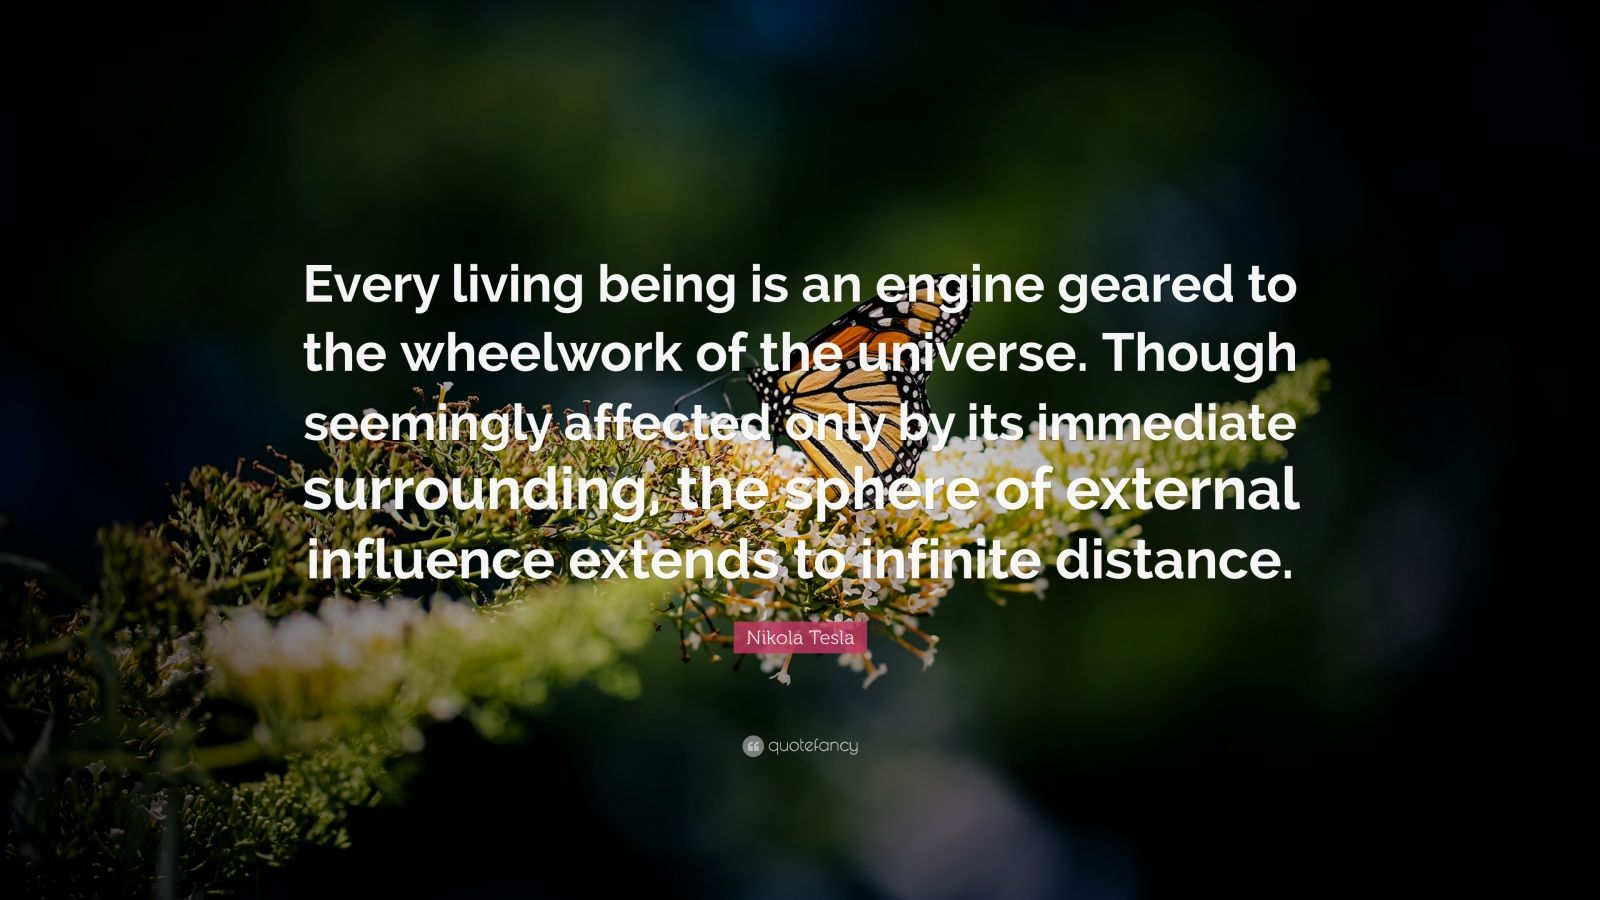 nikola tesla quote every living being is an engine